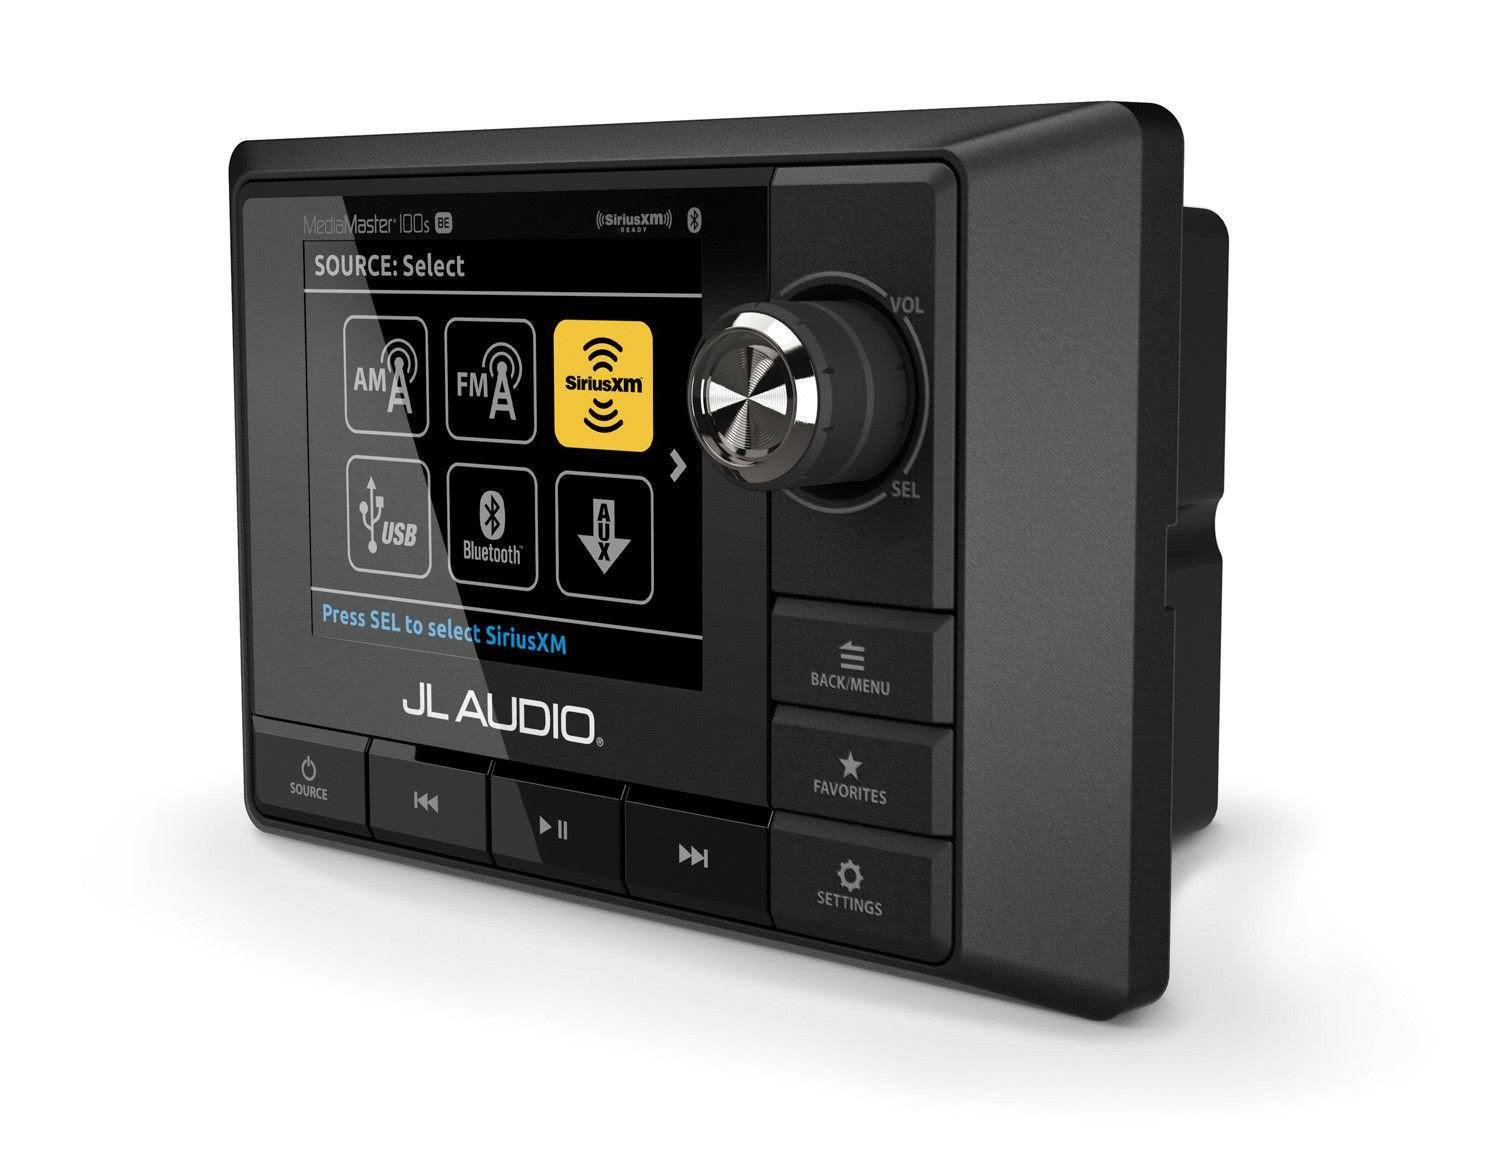 JL Audio 99920 Weatherproof Source Unit - Black